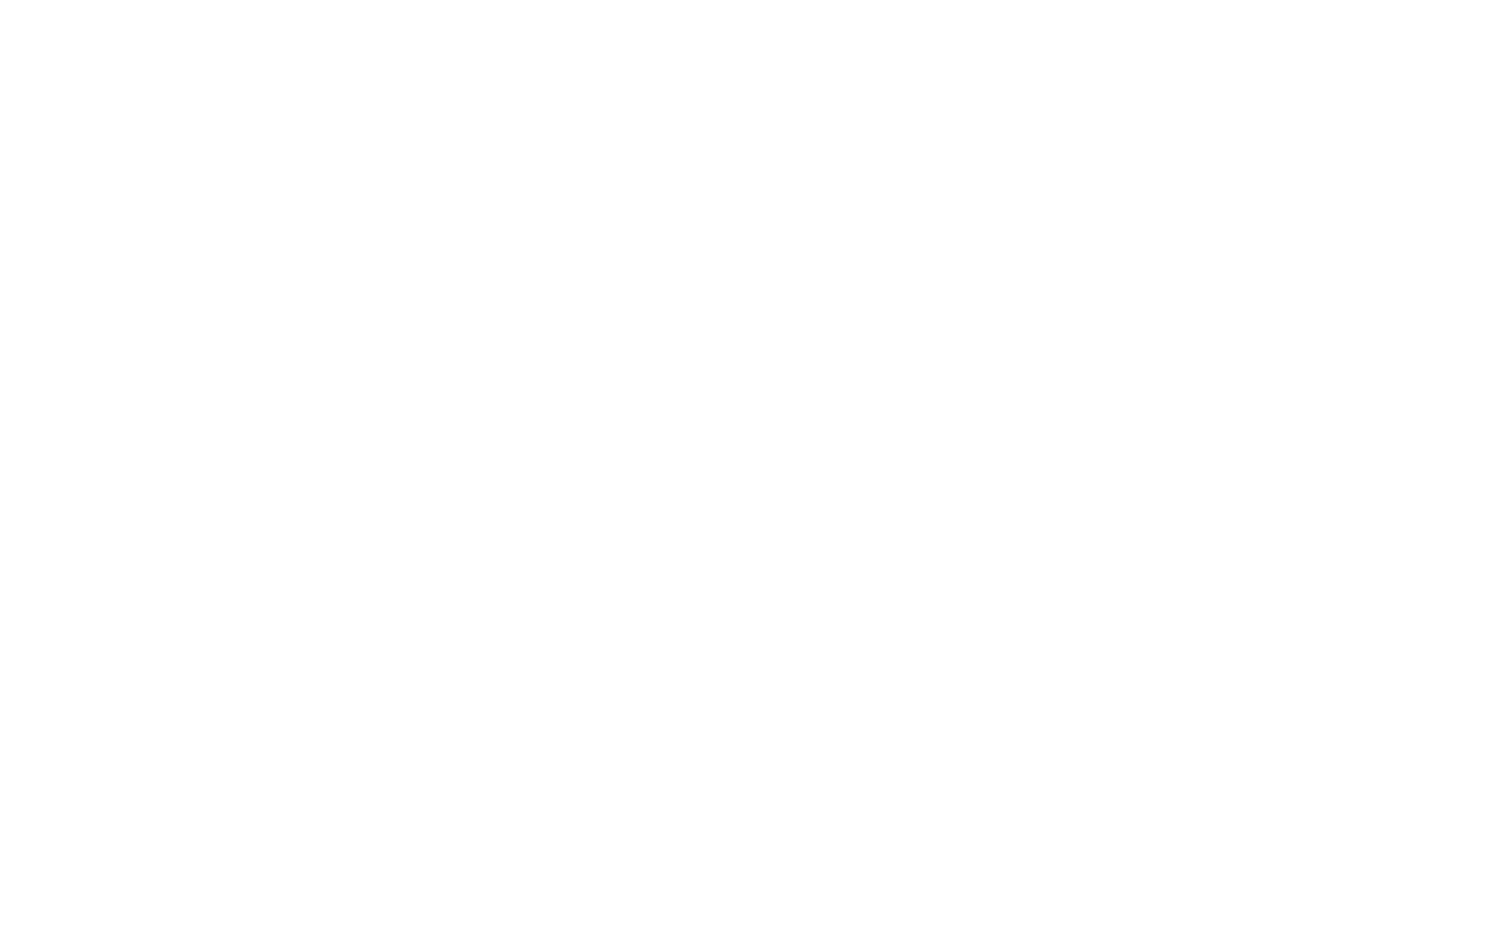 Scarlet Consulting Group